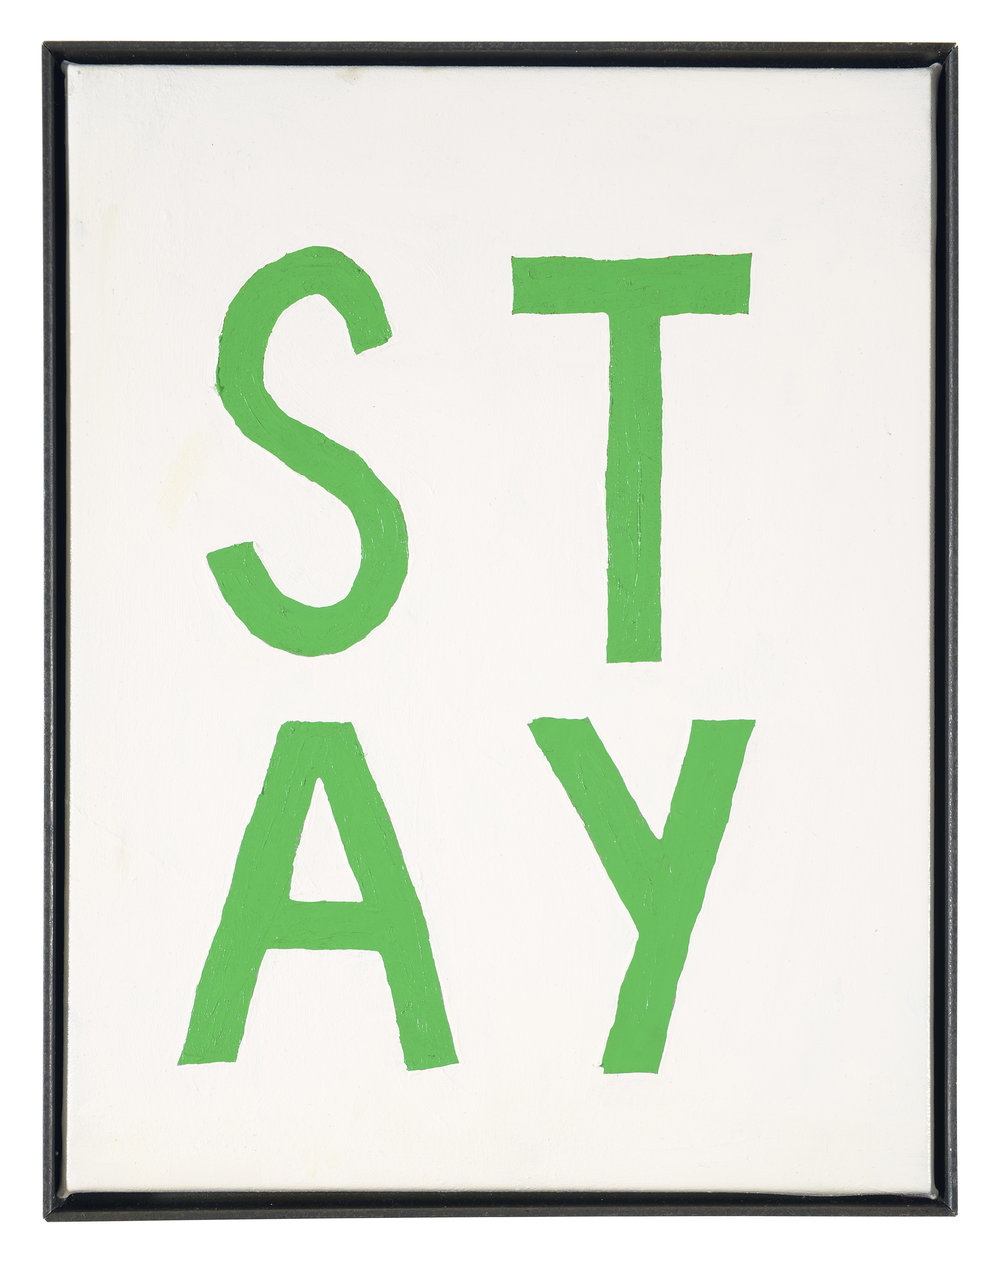 ART N MORE (Paul Bowler & Georg Weißbach), STAY (Four-letter words), 2016, Oil on canvas in artist's frame, 45 x 35 cm